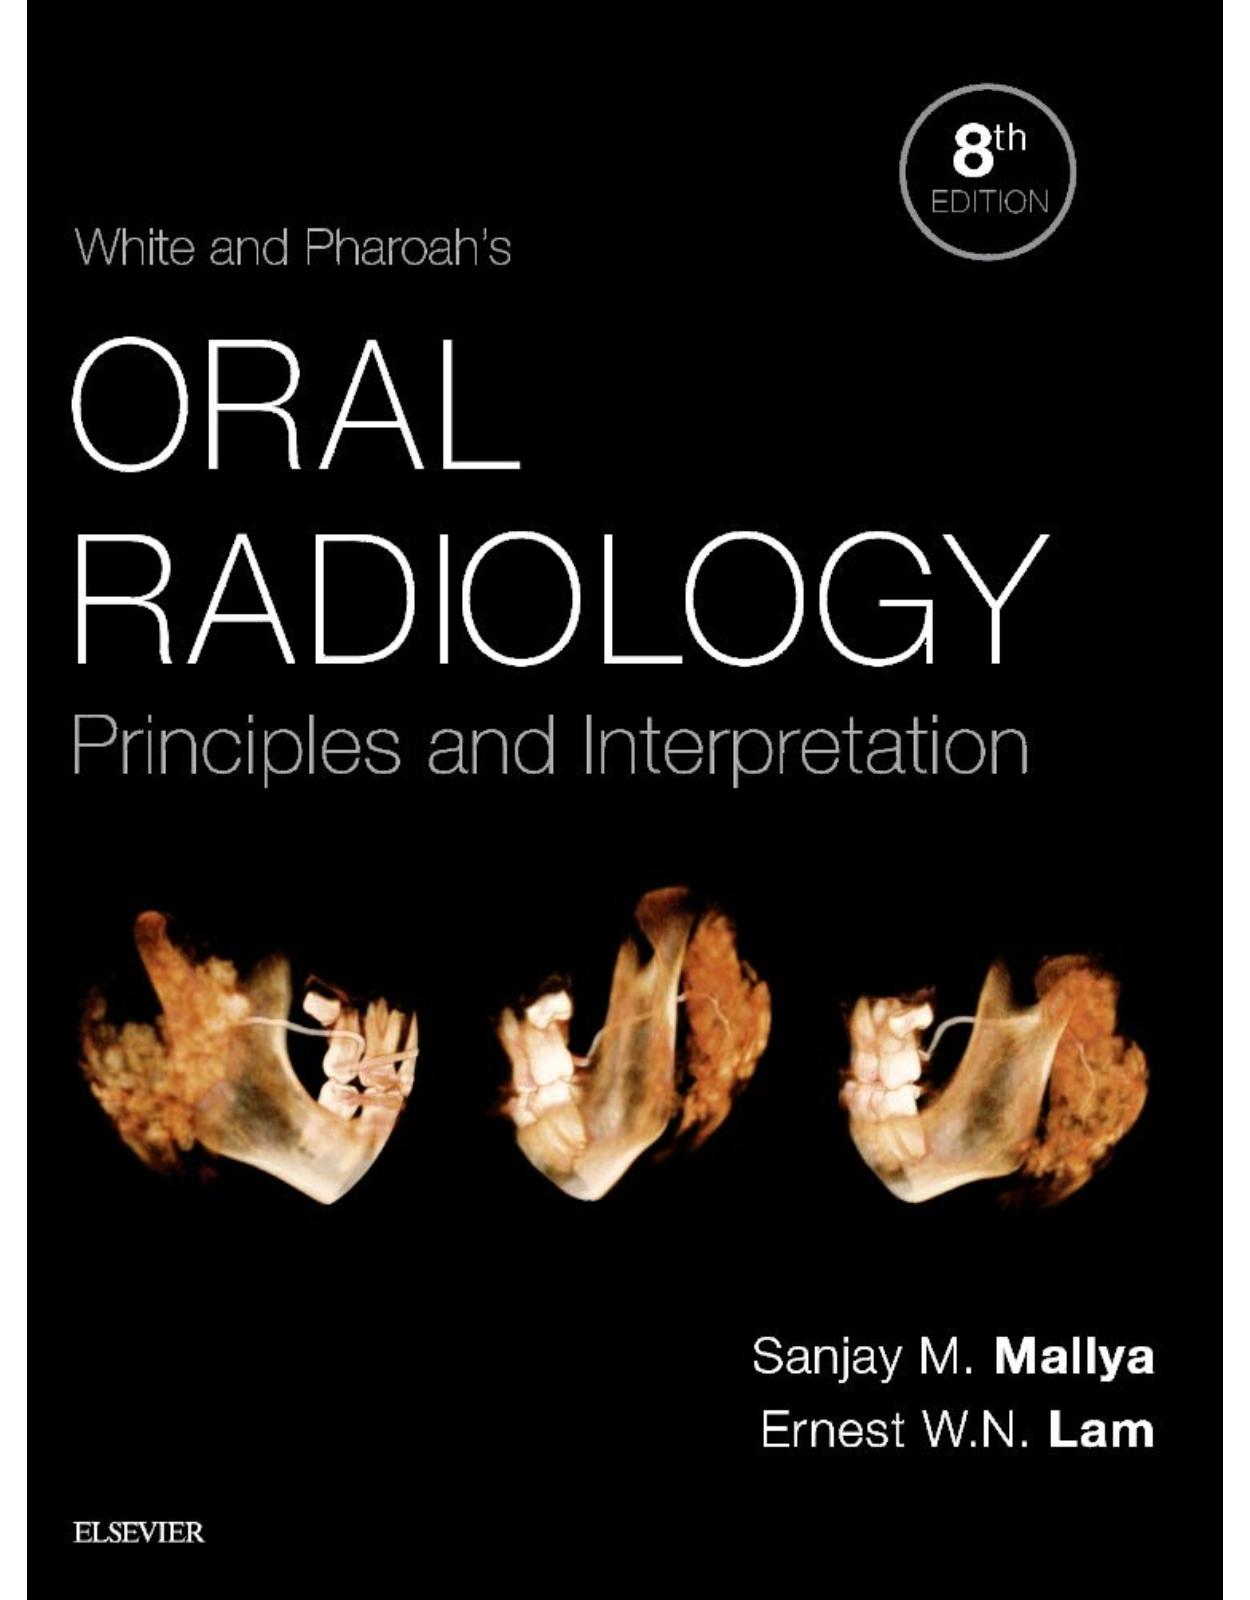 White and Pharoah's Oral Radiology: Principles and Interpretation, 8e